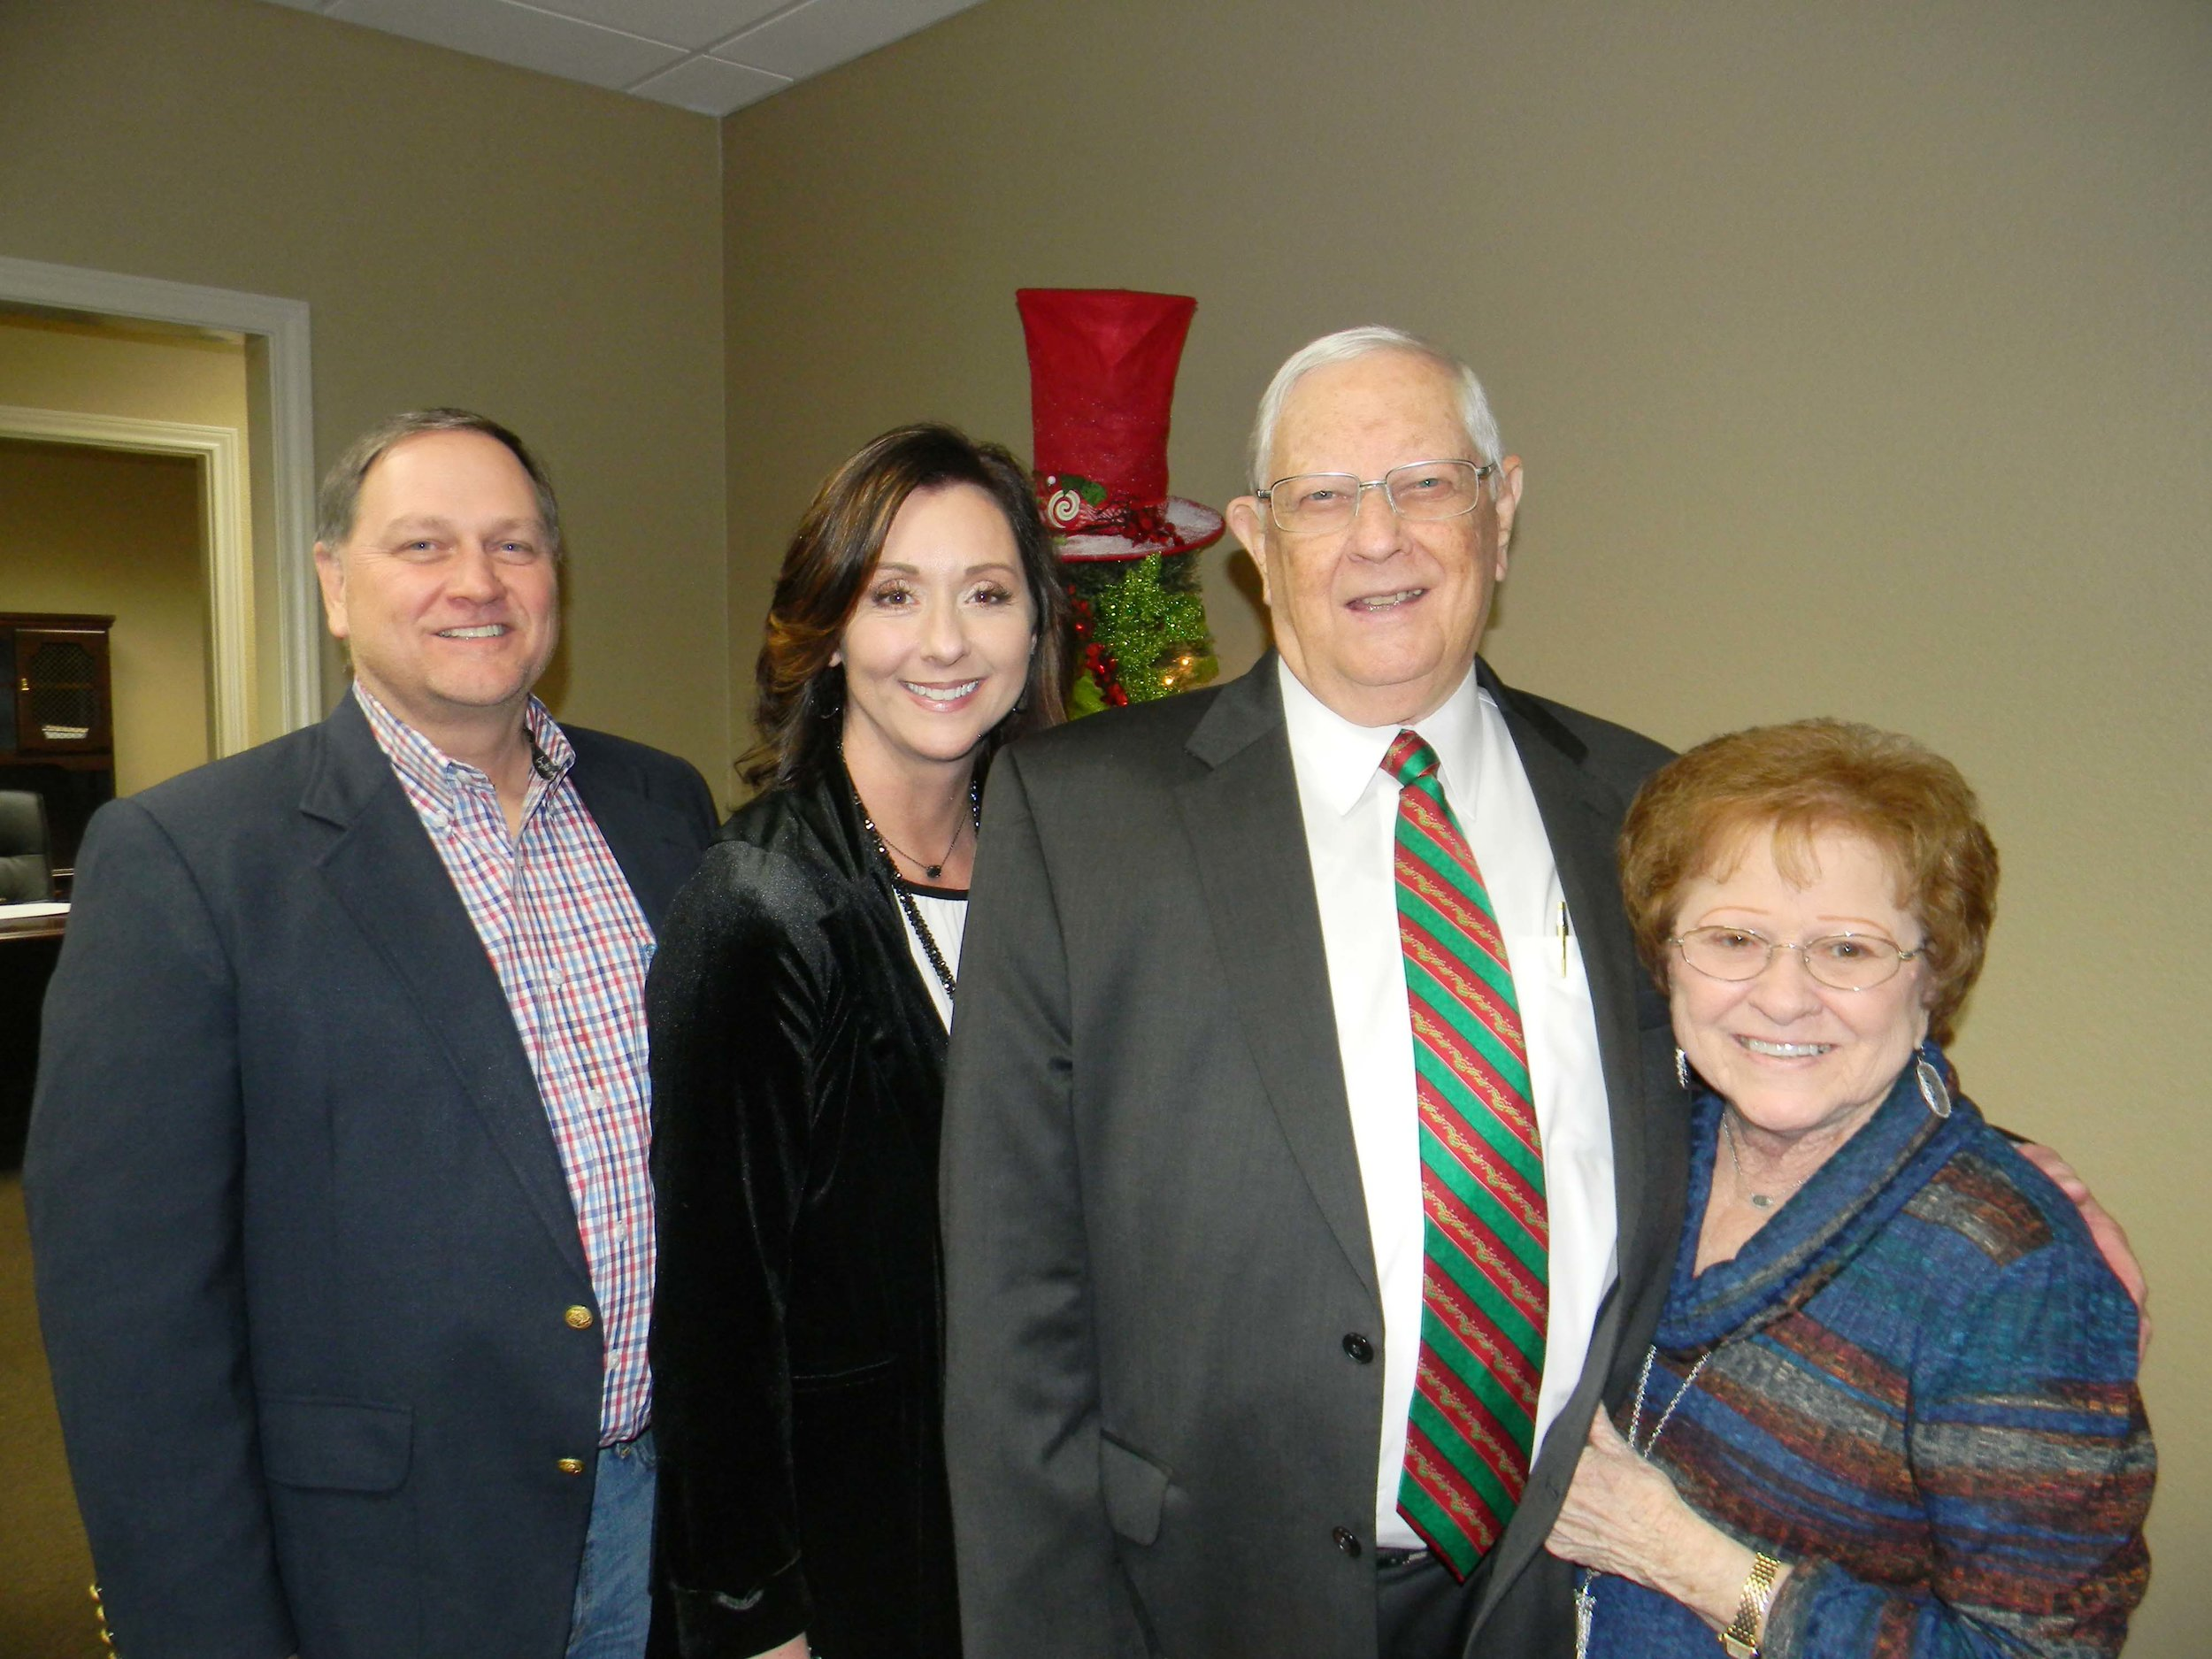 Brad and Ashley Carlow with Judge James and Nancy Carlow